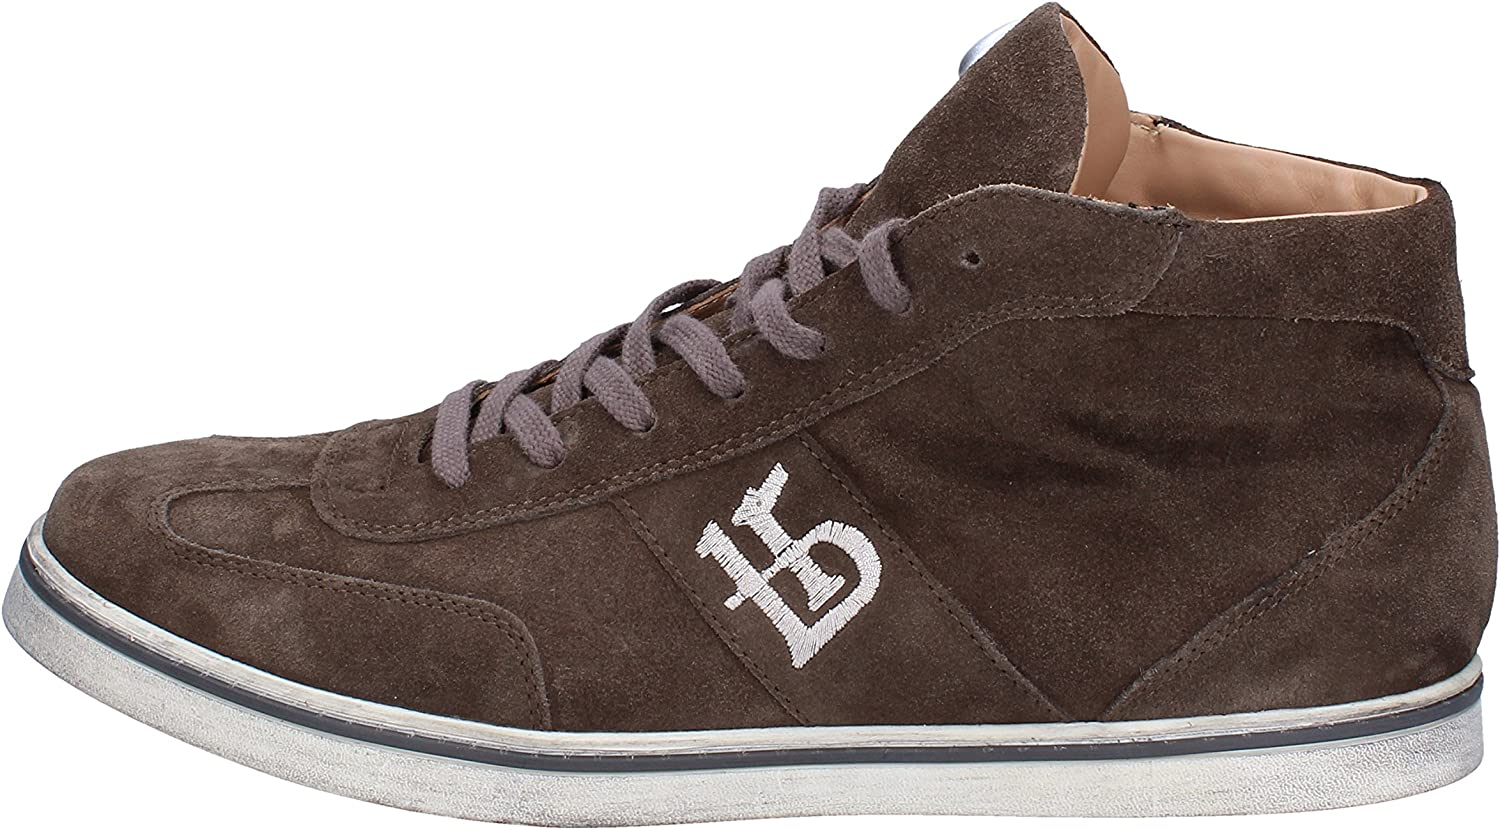 BOTTICELLI LIMITED Fashion-Sneakers Mens Suede Brown